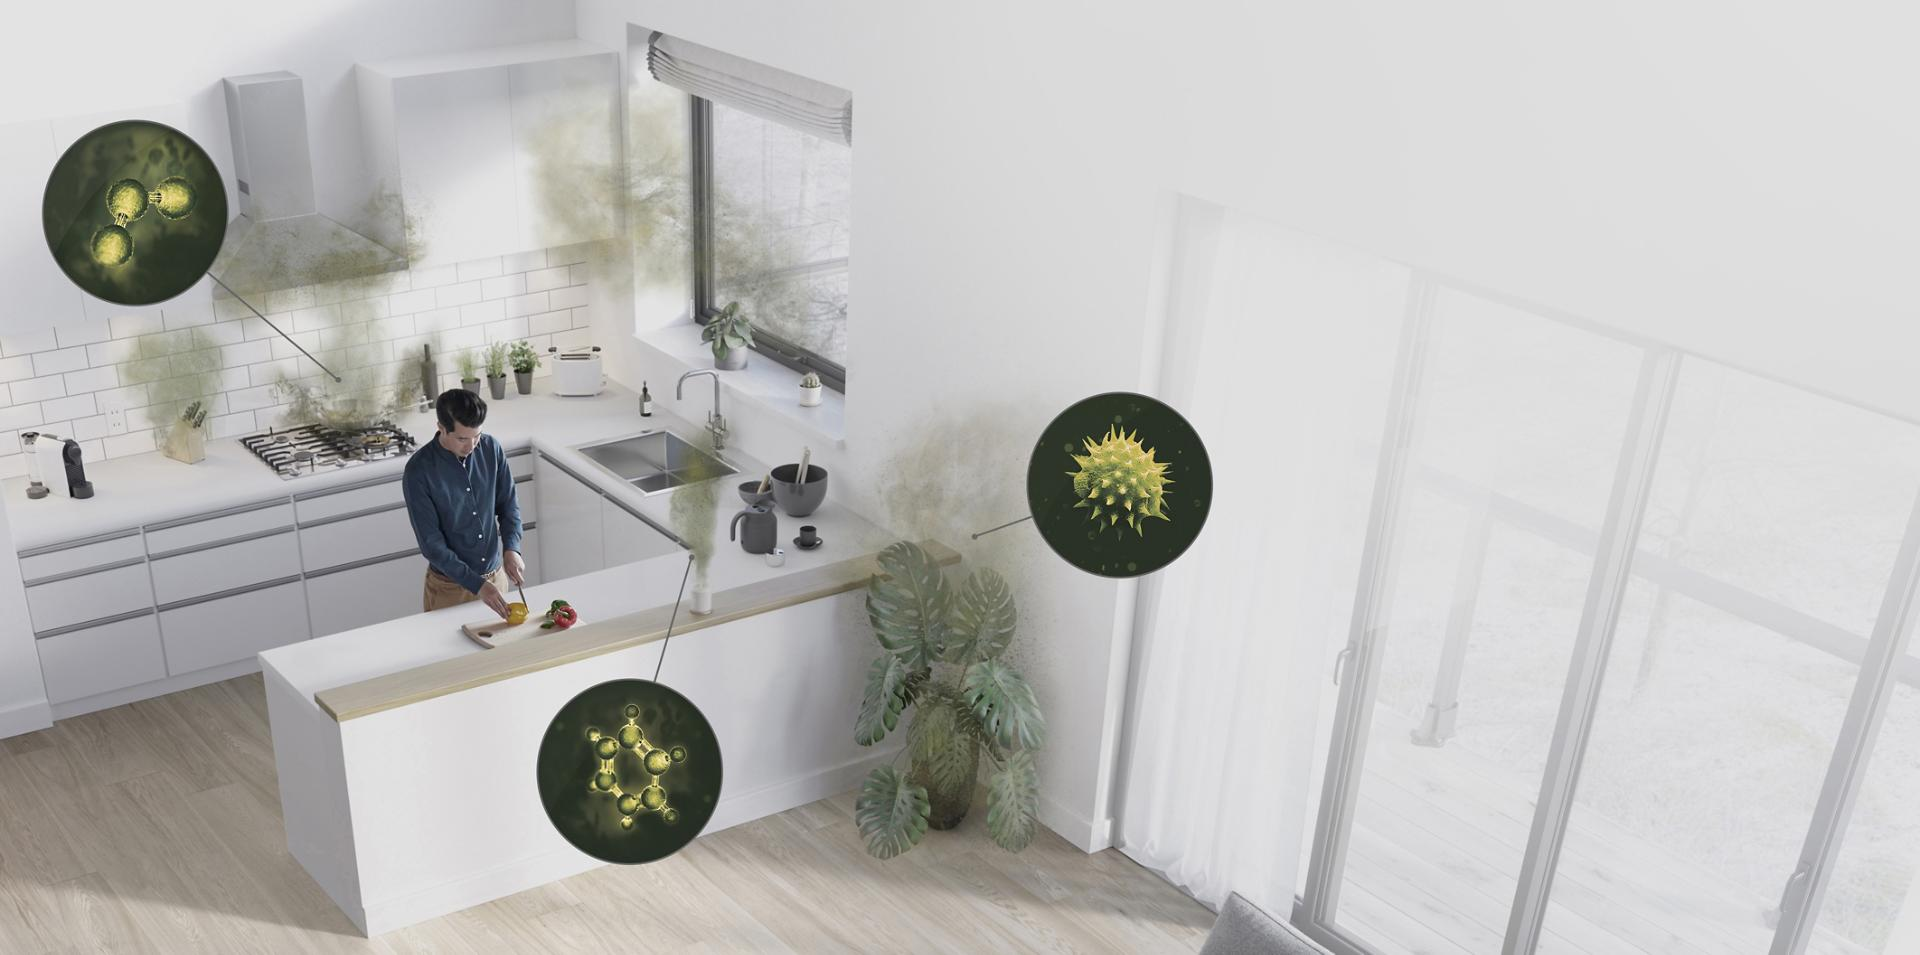 Pollutant sources in a living space and kitchen